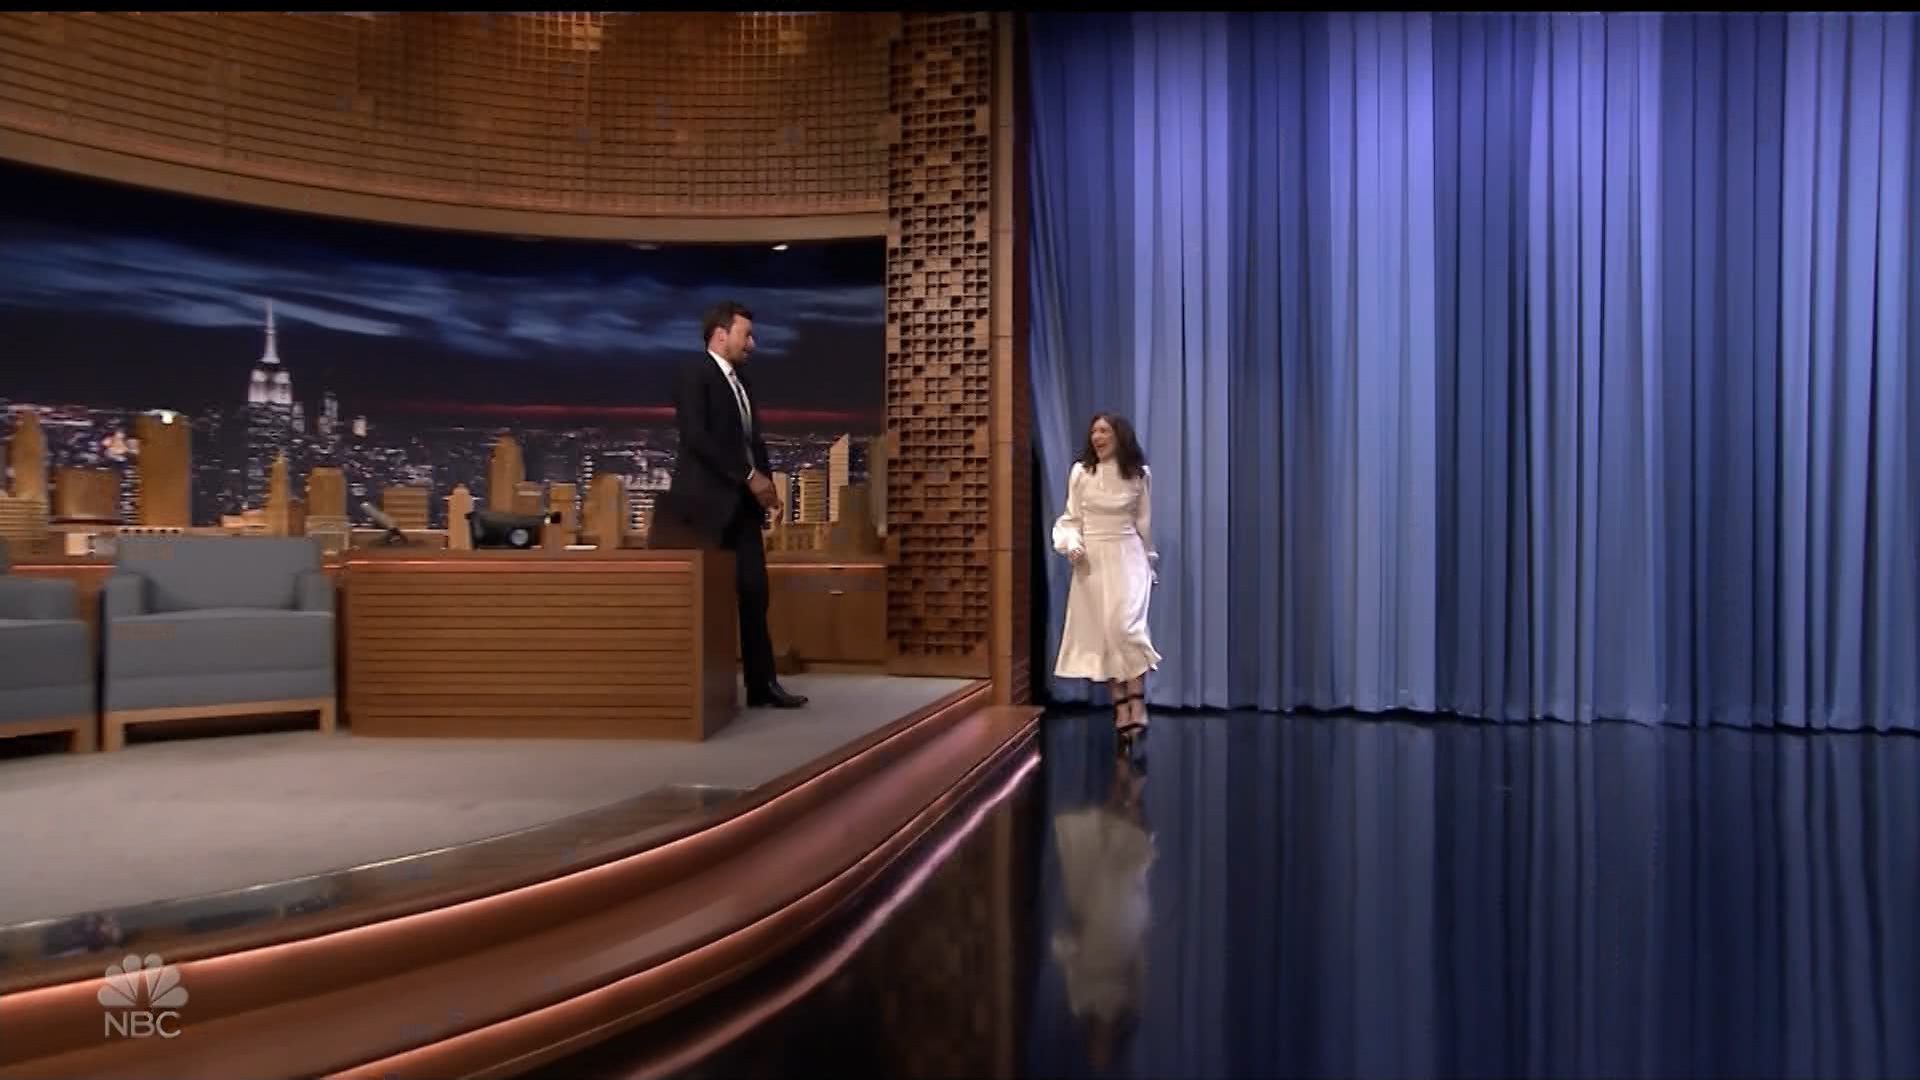 Lorde_-_Jimmy_Fallon_720p_2017_06_15.00_00_13_10.Still001.jpg